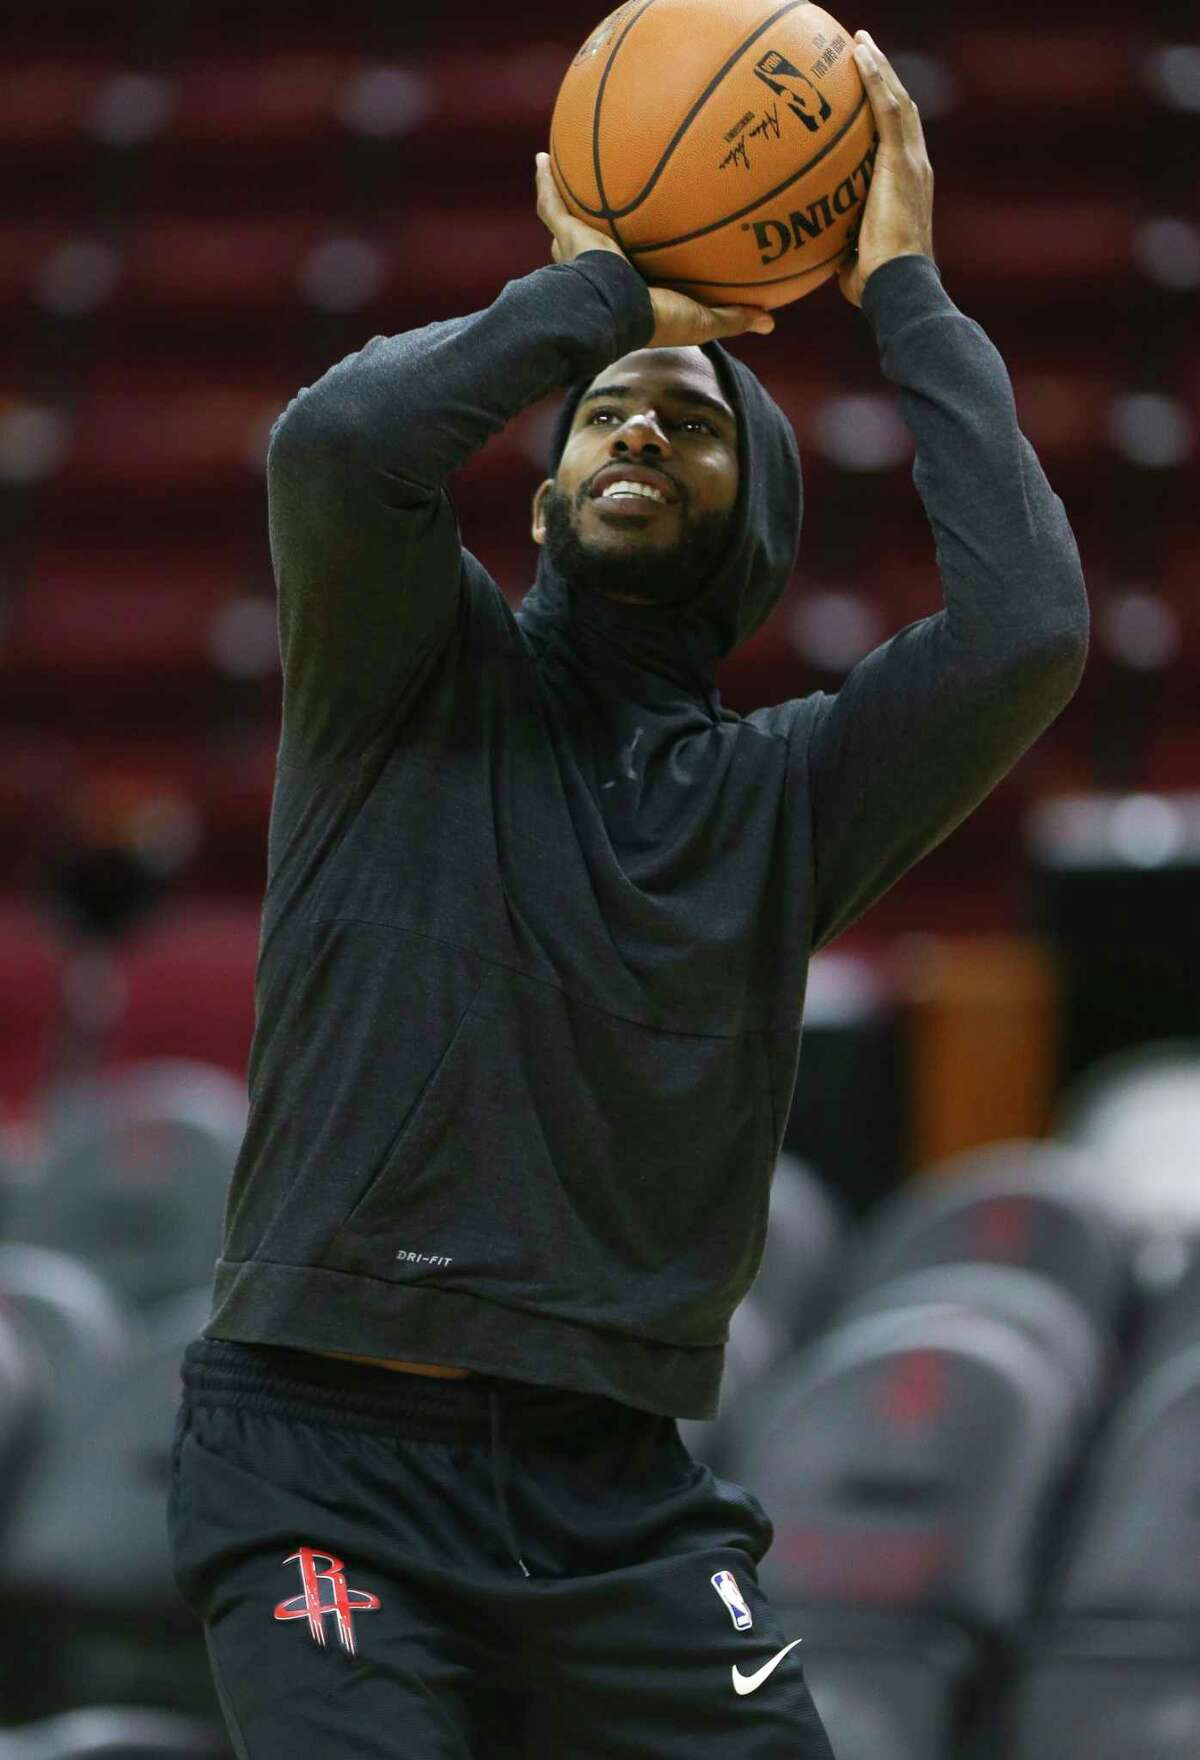 Houston Rockets' Chris Paul practices shooting the basket on the court at Toyota Center before the team takes off to Oakland on Friday, May 18, 2018, in Houston.